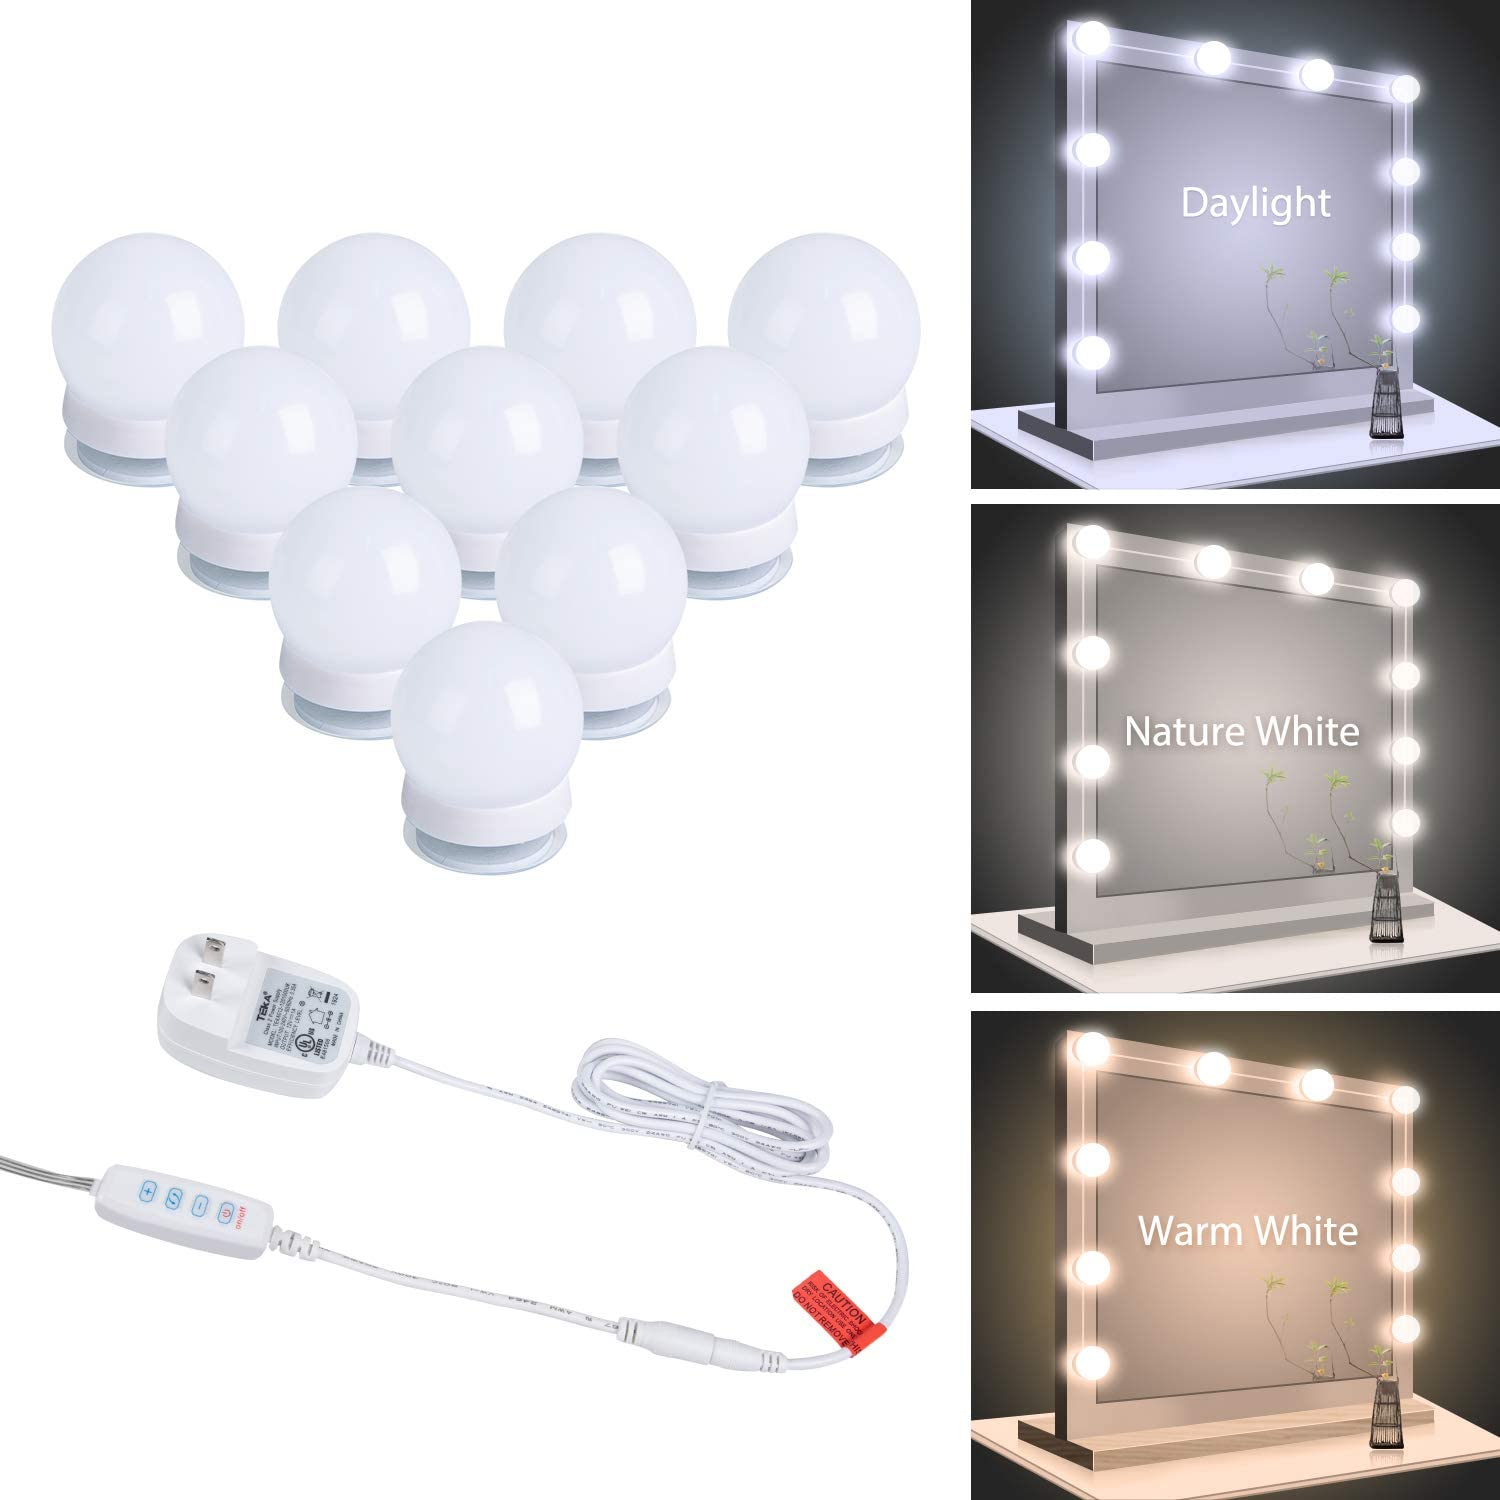 Hollywood Style LED Vanity Mirror Lights Kit with 5 Dimmable Bulbs 5 Bulbs Mirror Lights USB Cable Vanity Lights for Mirror with 3 Color Modes /& 5 Adjustable Brightness